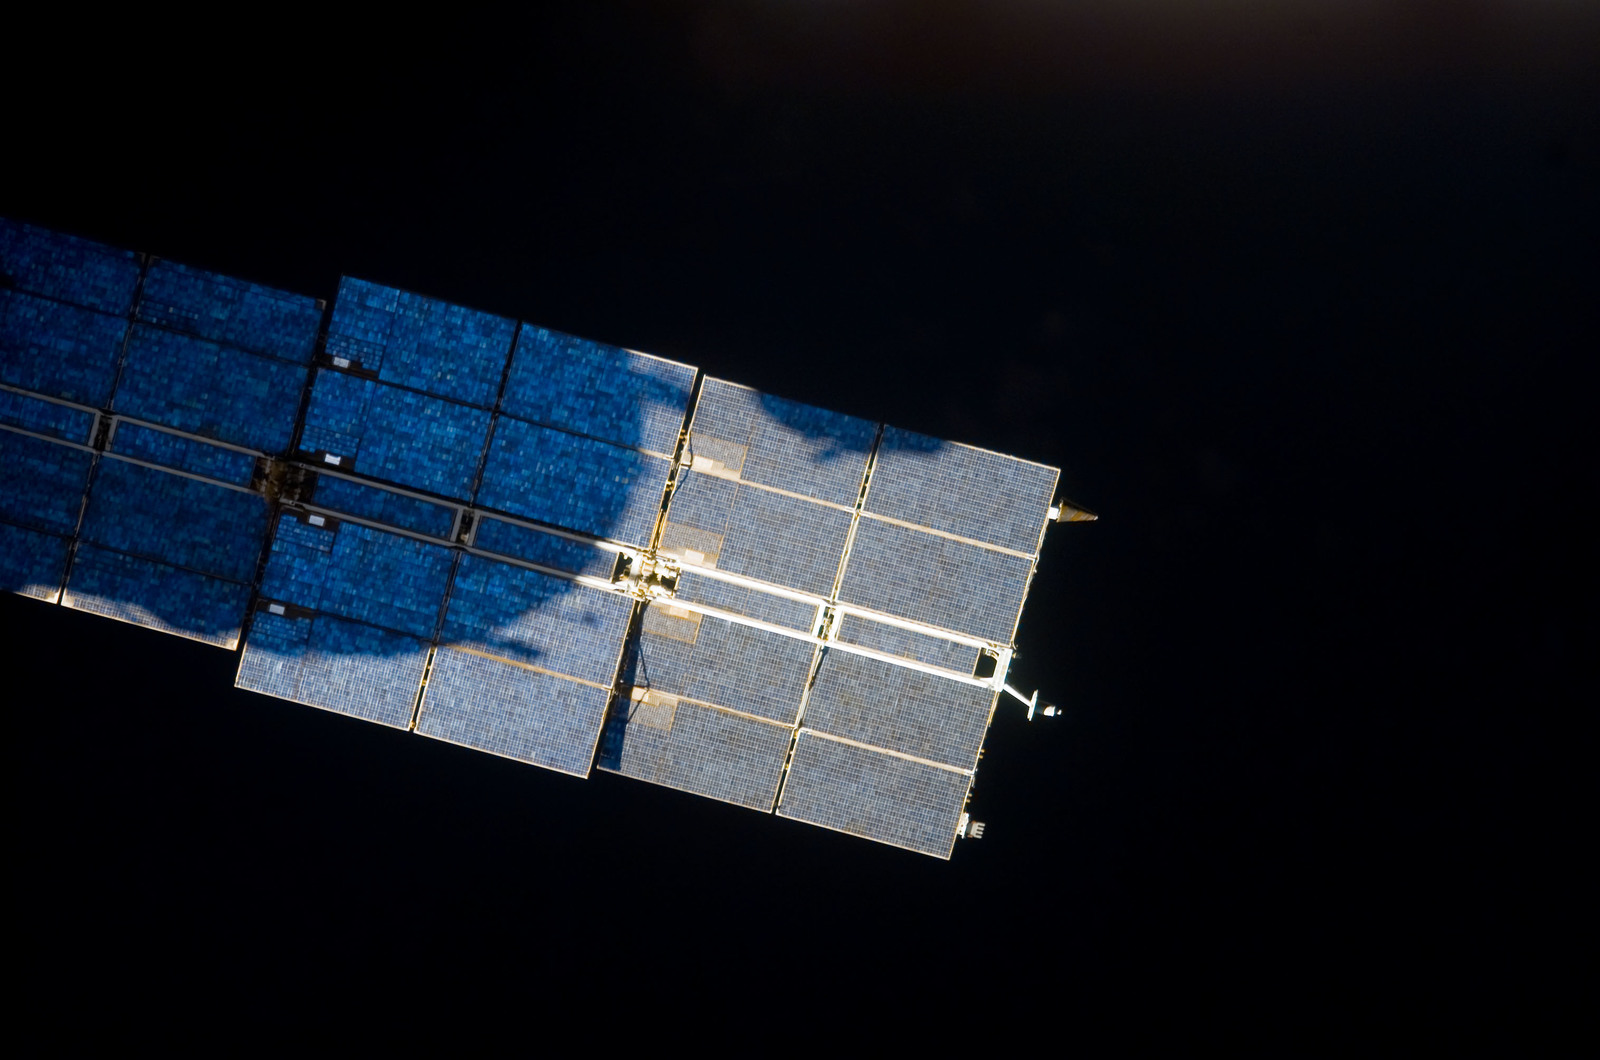 S123E009459 - STS-123 - Flyaround view of the ISS taken from STS-123 Space Shuttle Endeavor